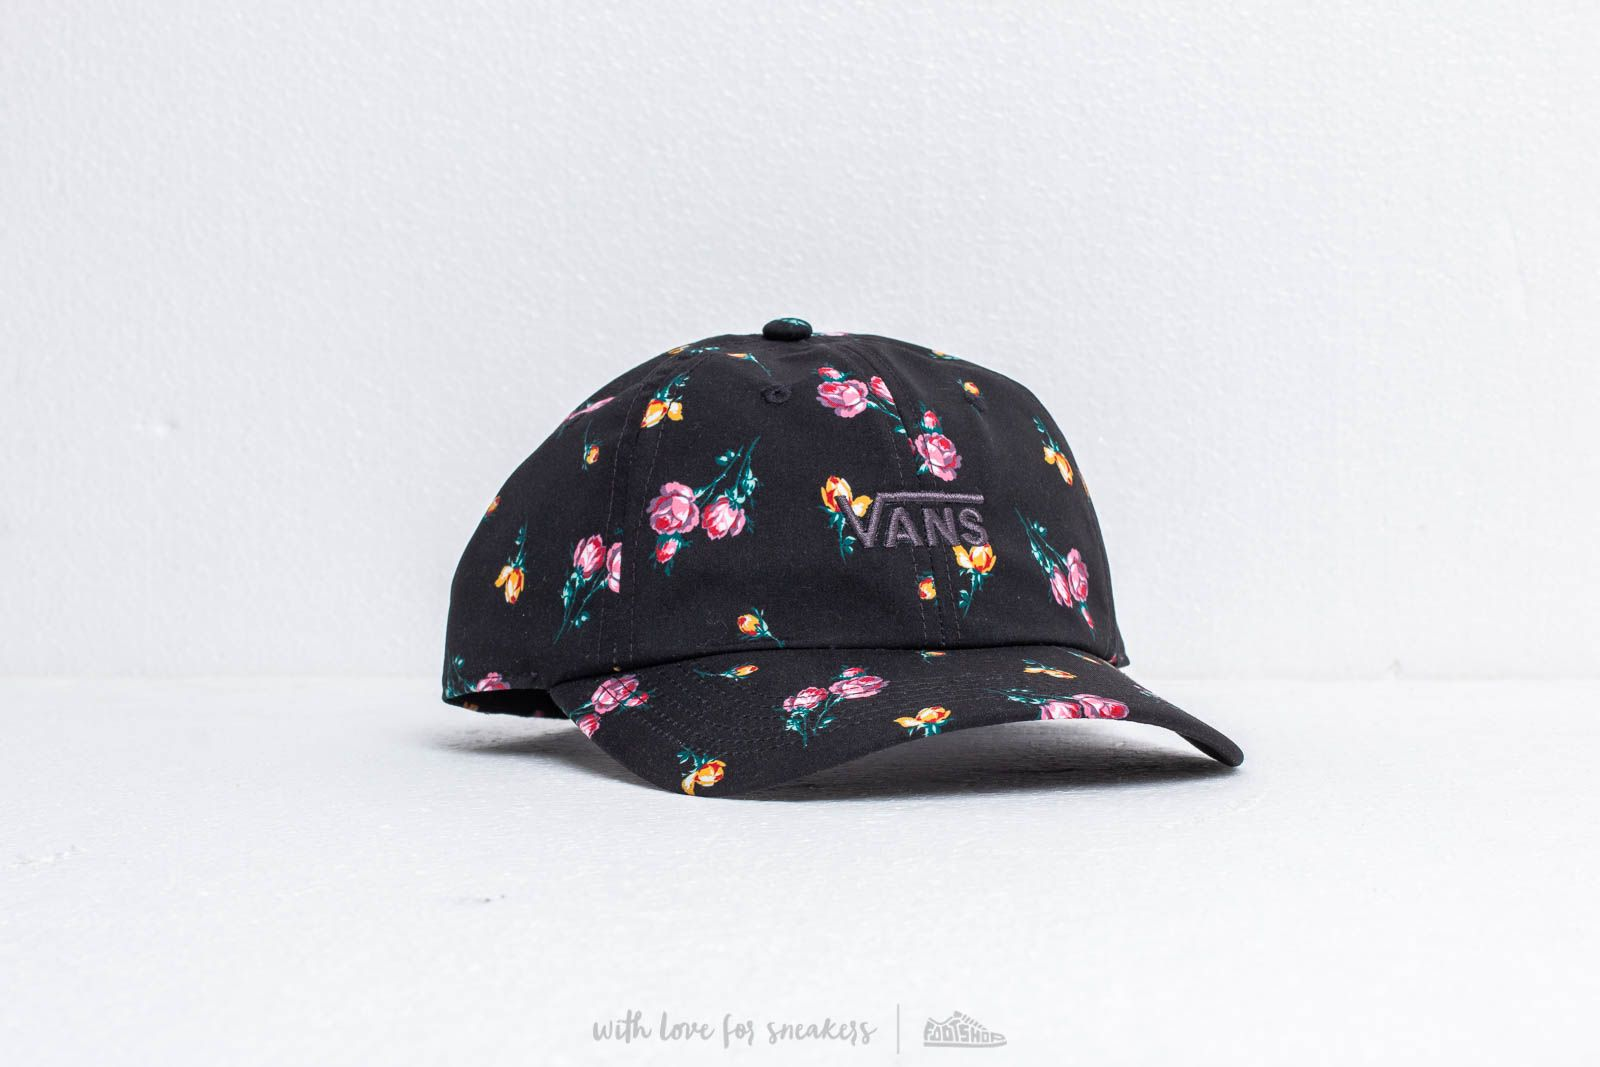 ef562472daa Vans Court Side Print Cap Black  Satin Floral